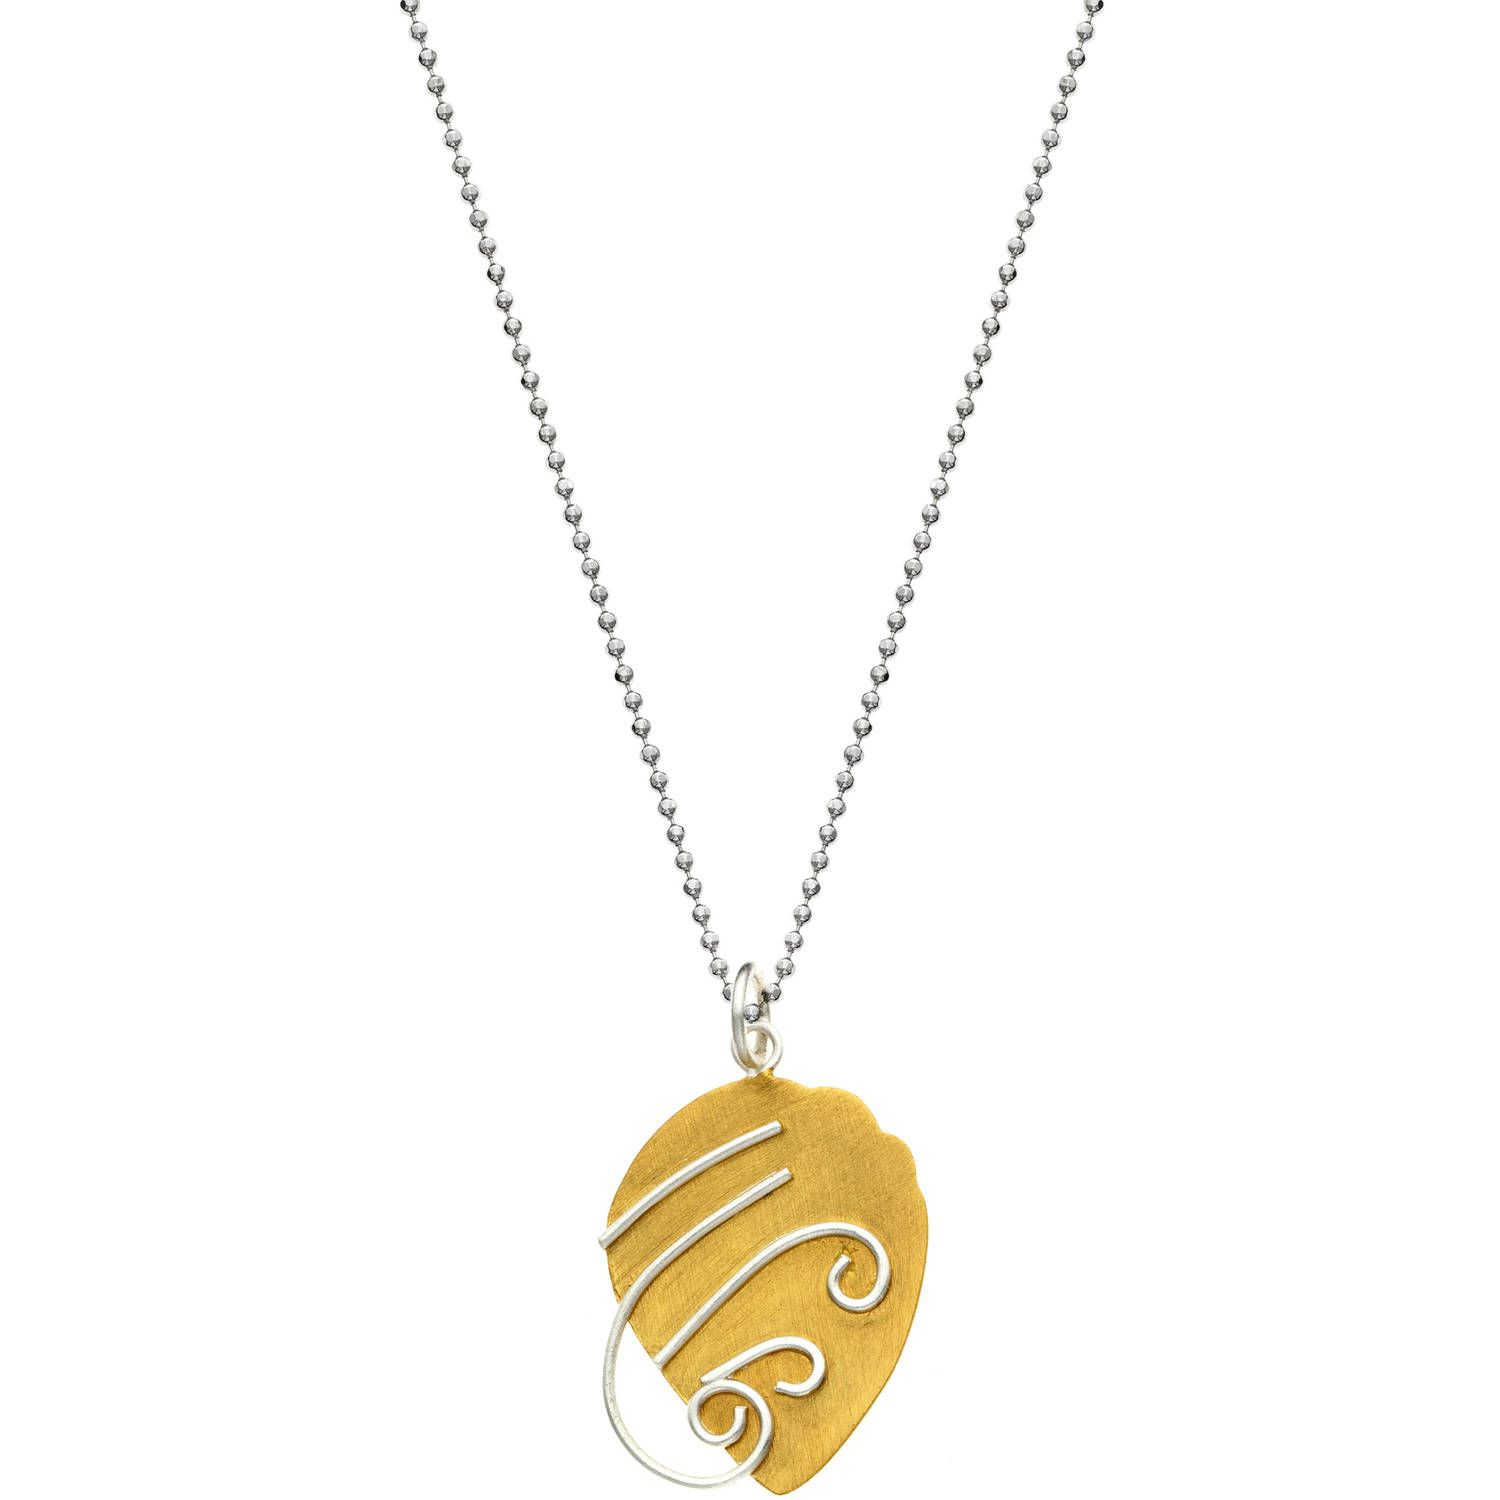 Image of 5th & Main 14kt Gold-Plated and Sterling Silver Acorn with Silver Scroll Pendant Necklace